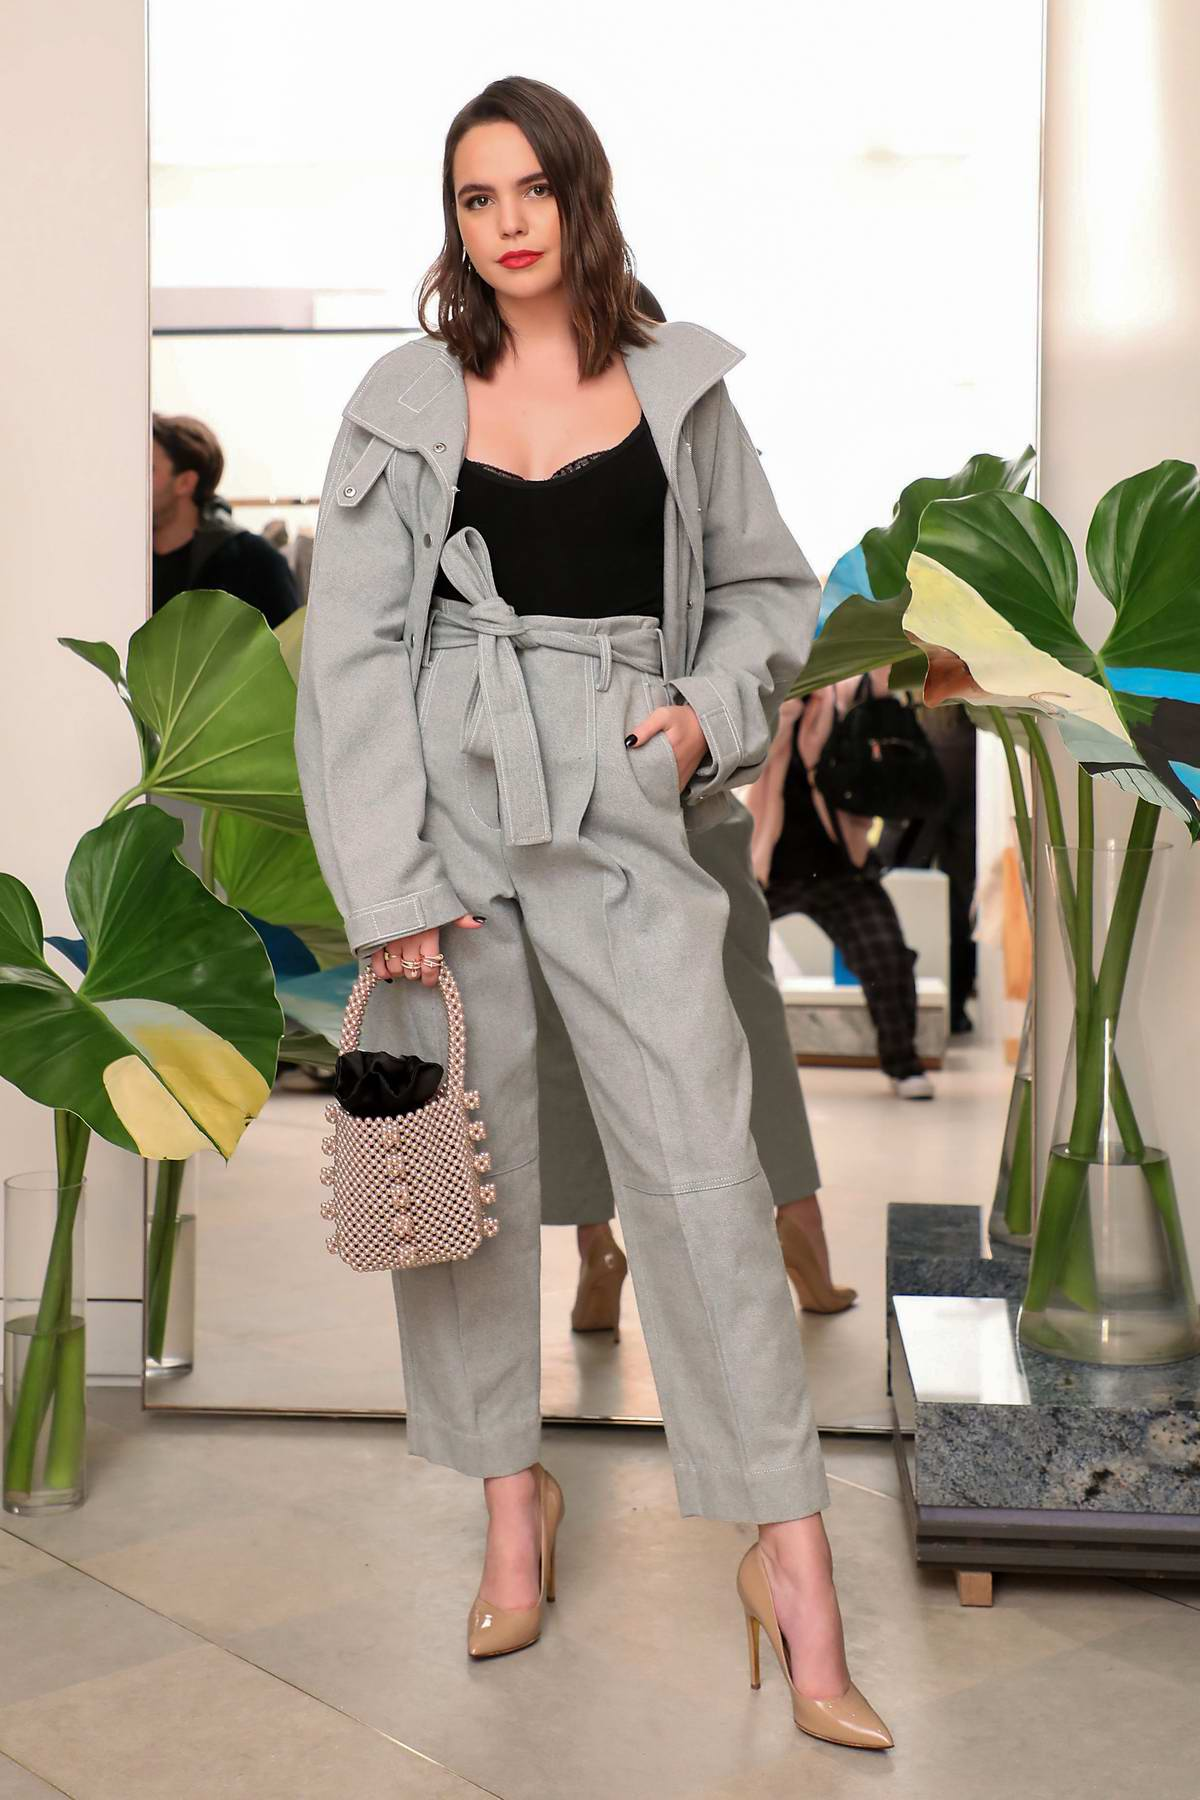 Bailee Madison attends the 3.1 Phillip Lim presentation, Fall/Winter 2020 during NYFW in New York City